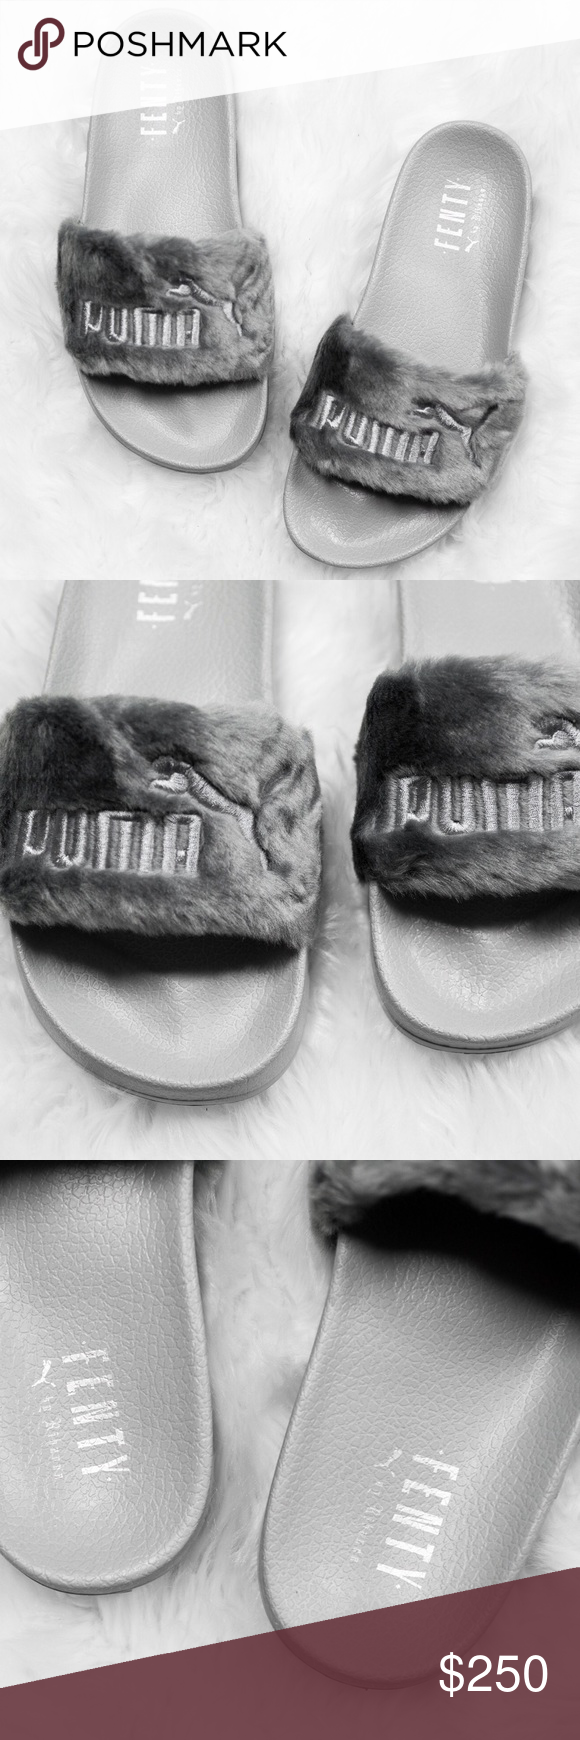 1ef79b884d1 Womens Puma x Rihanna Fur Fenty Slides in Grey Brand new with original box.  NO TRADES. Cheaper through